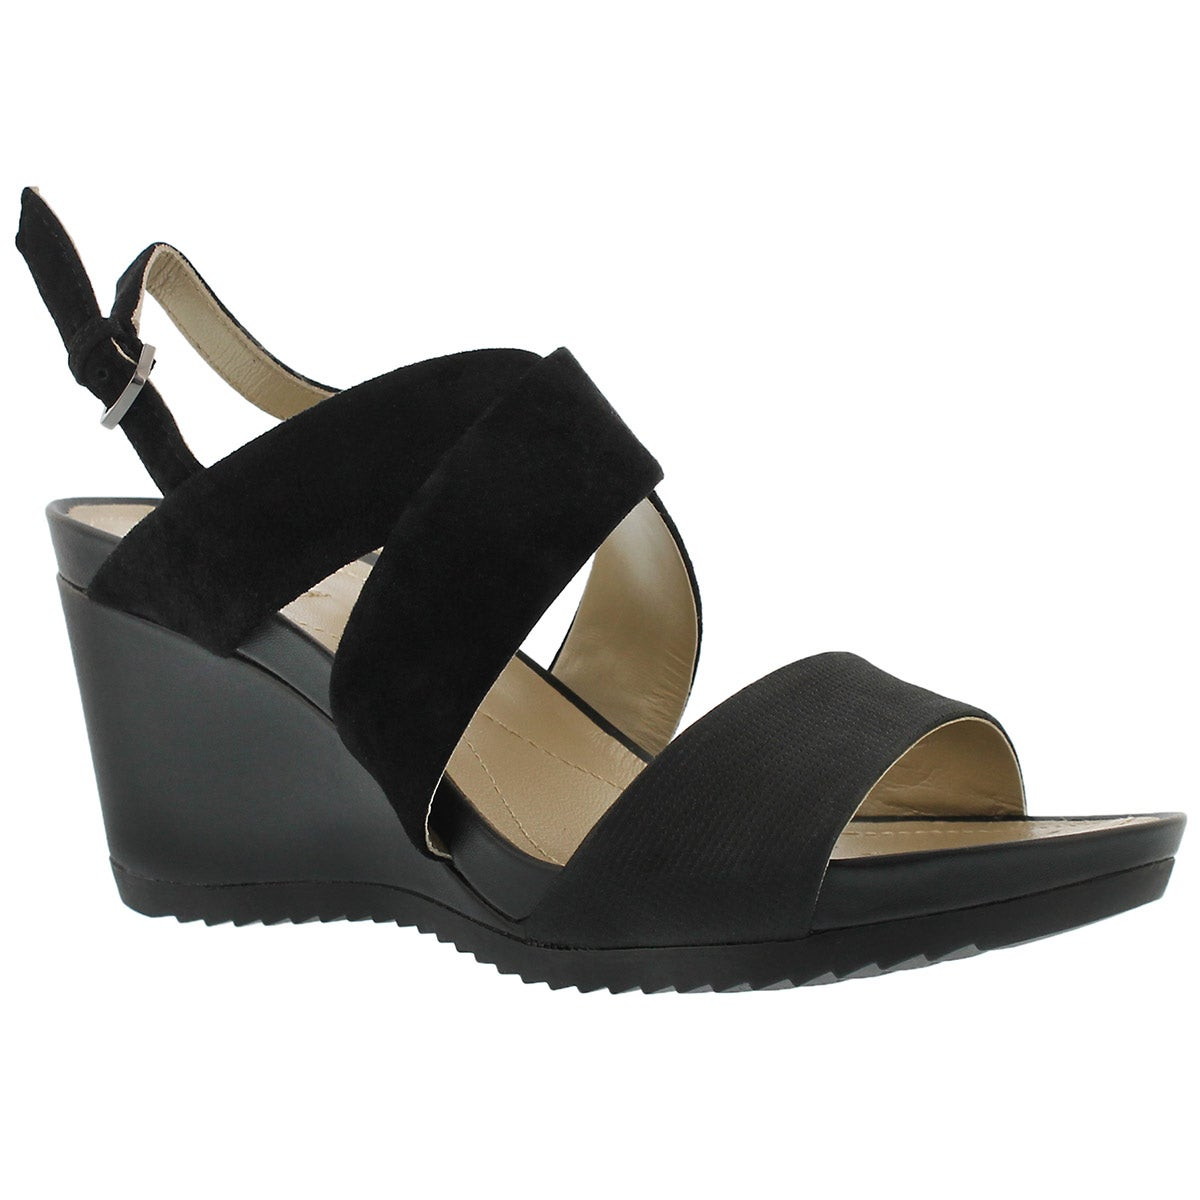 Women's NEW RORIE A black wedge sandals